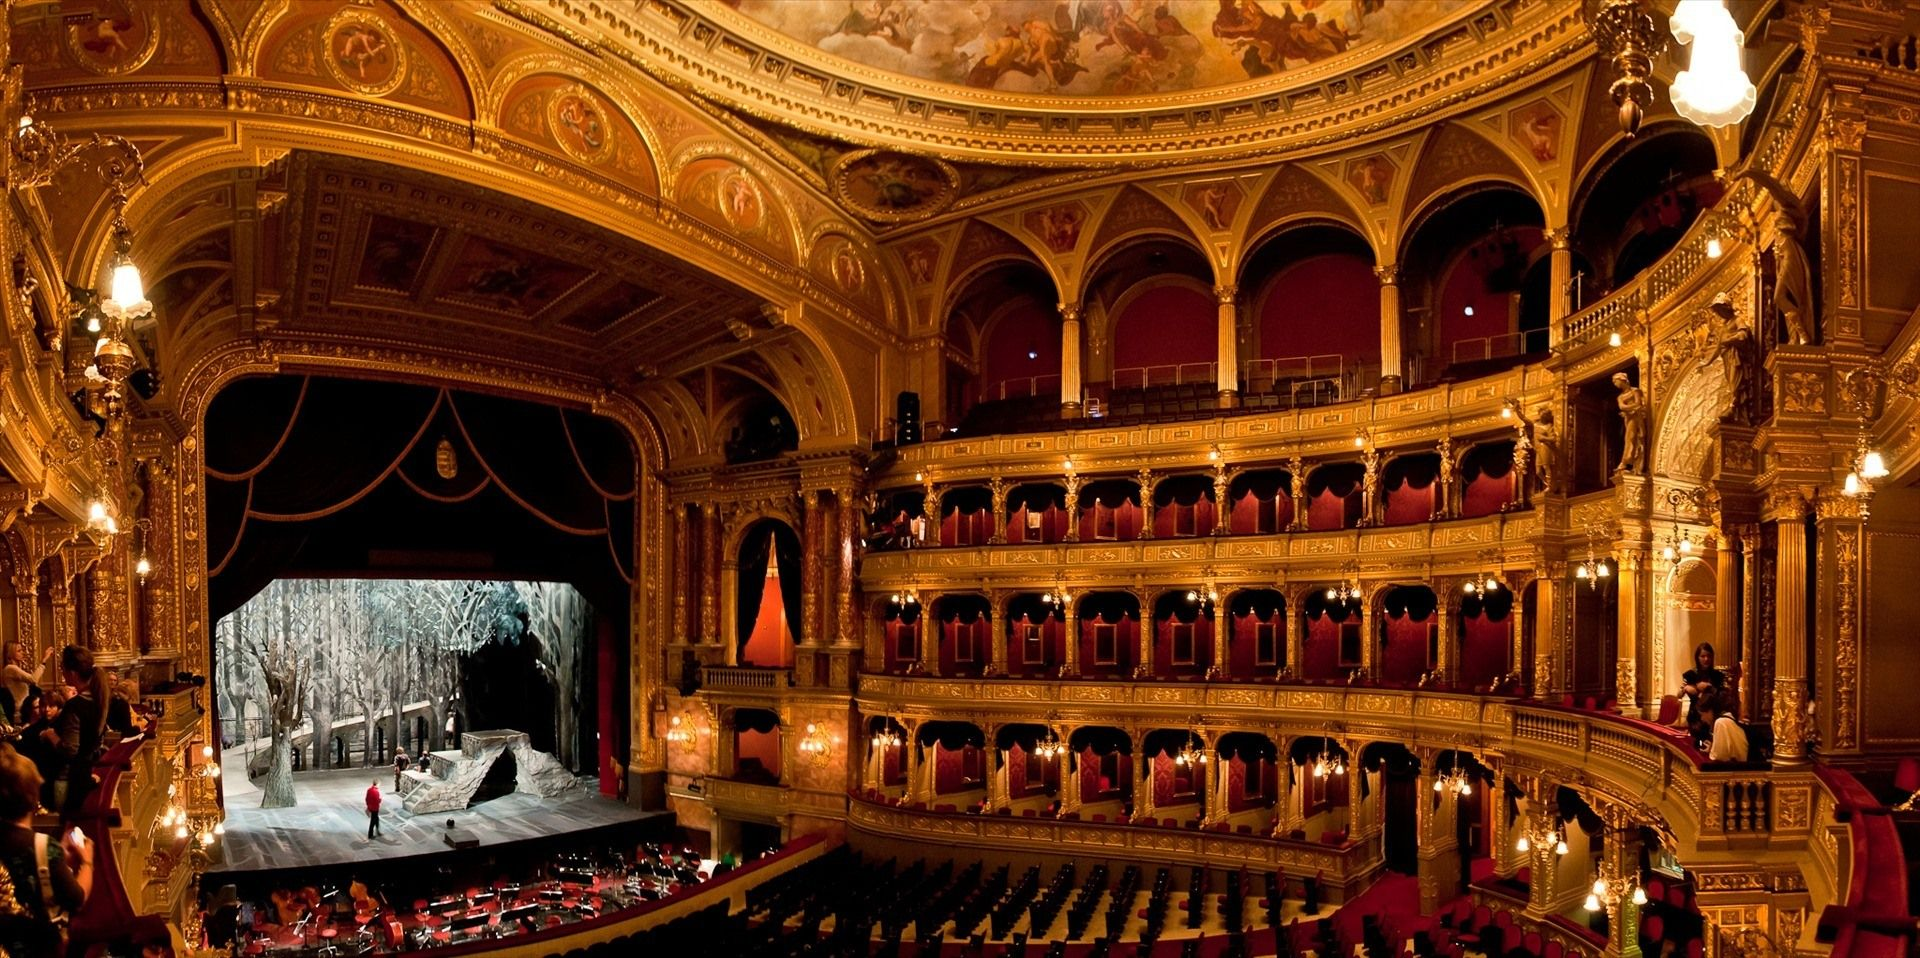 The Hungarian State Opera House is a Neo-Renaissance opera house located in central Pest | 12 ...